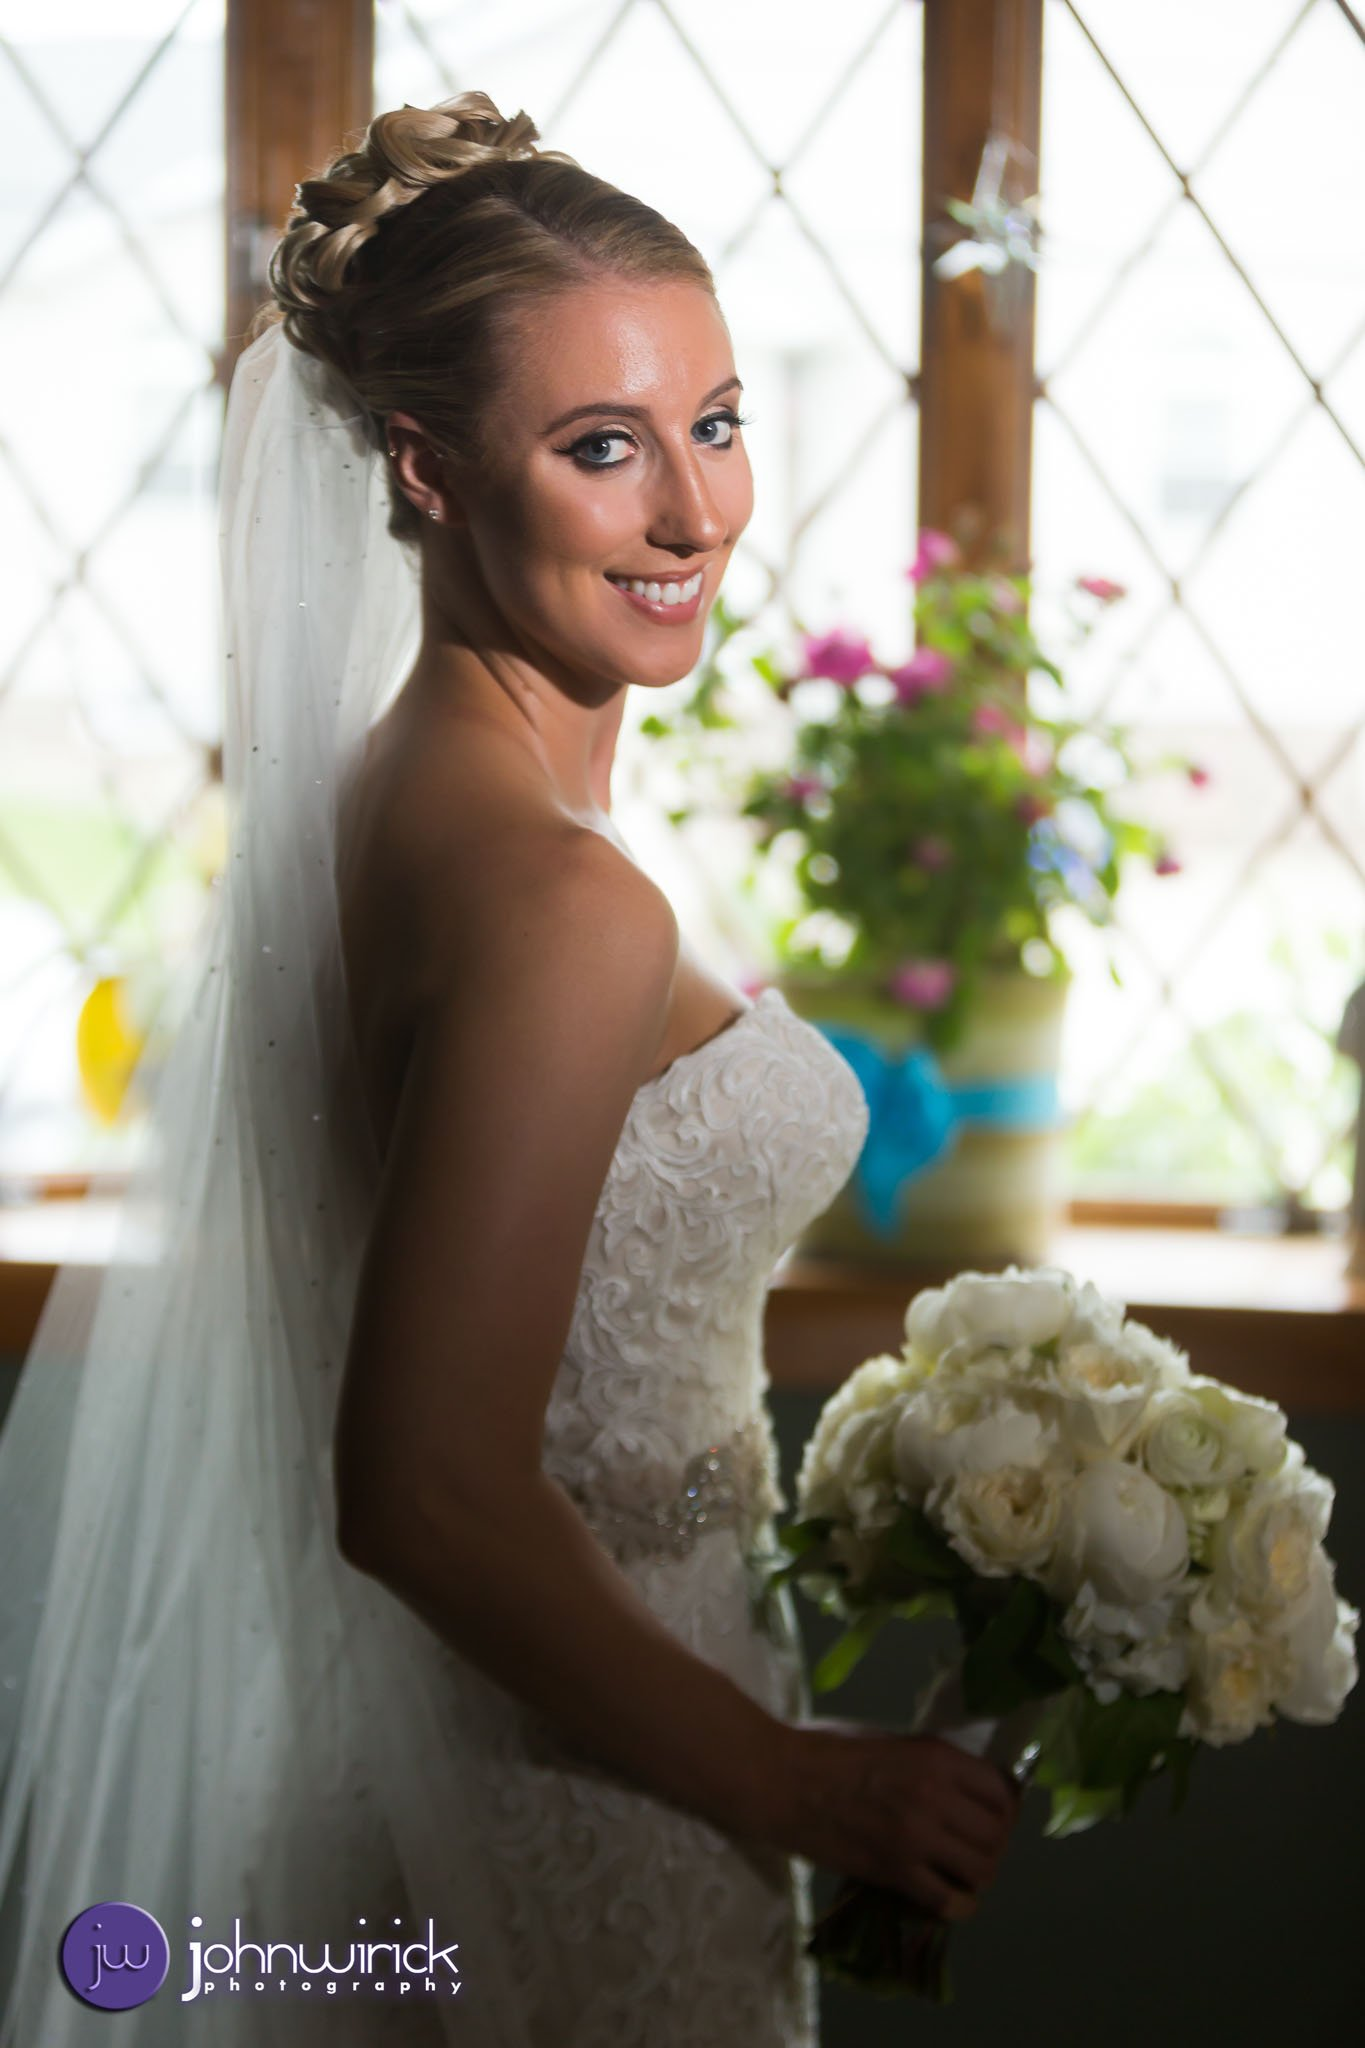 Wedding Photography Lehigh Valley, PA